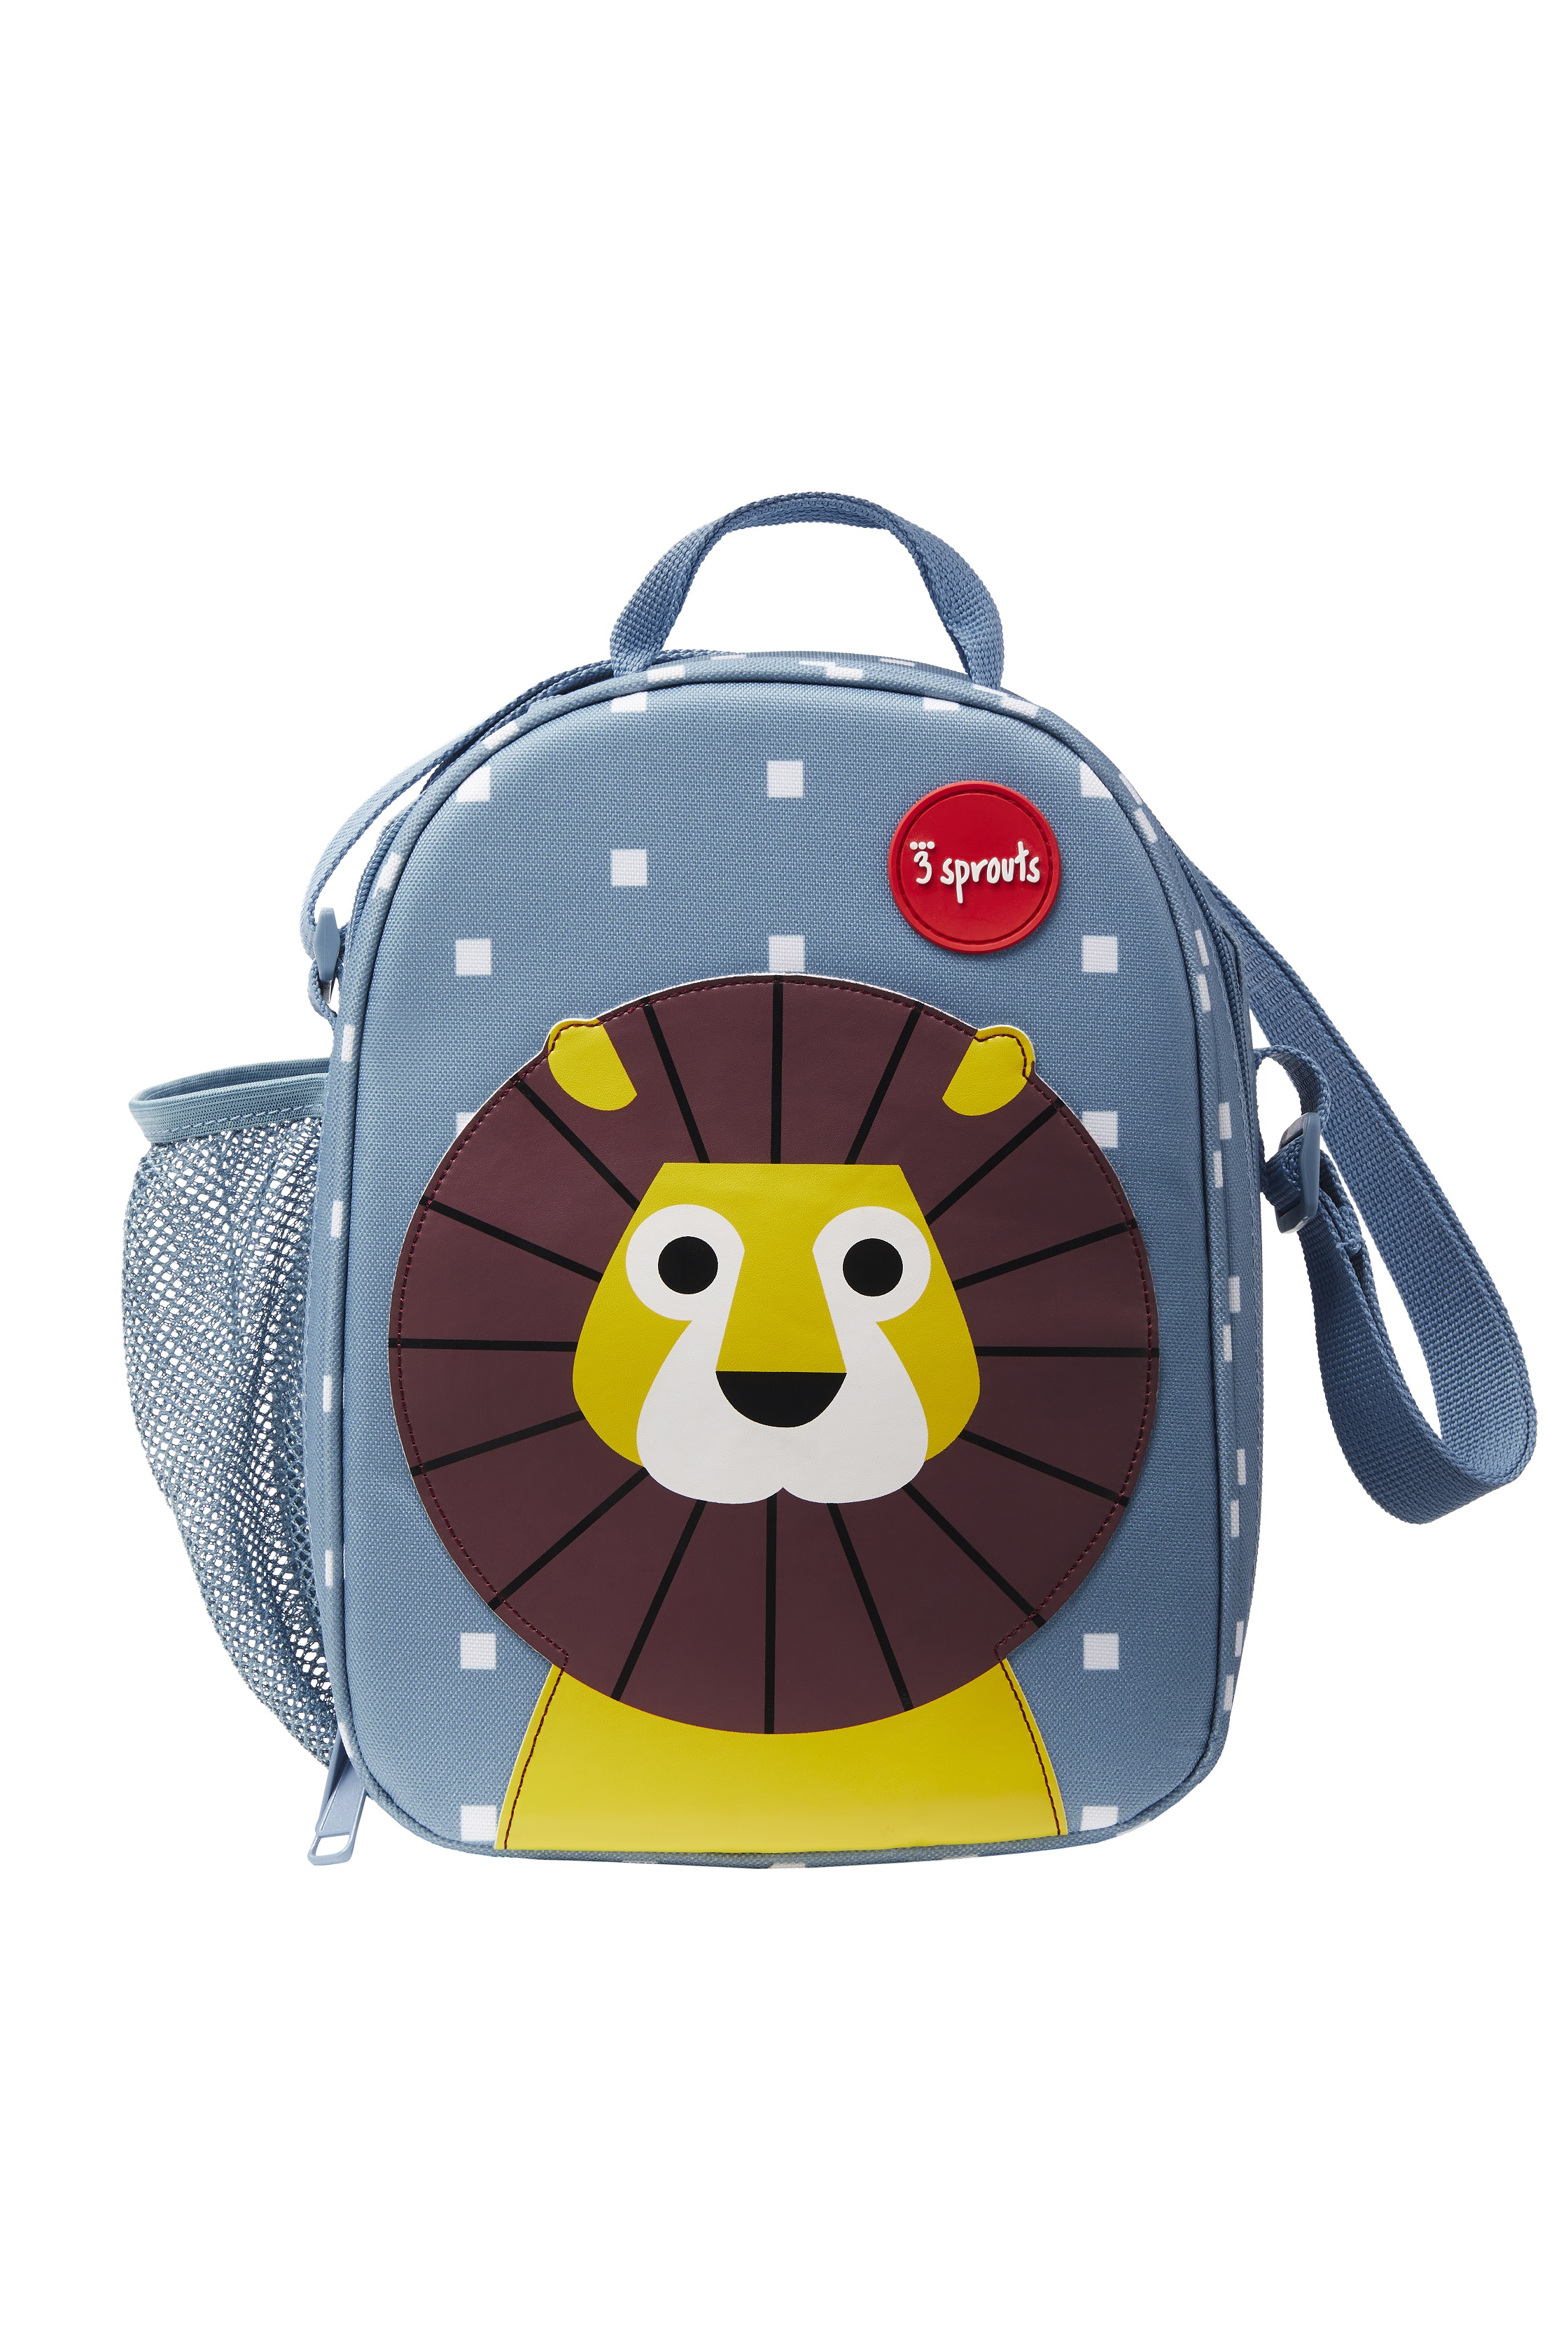 3 Sprouts - Lunch Bag - Blue Lion